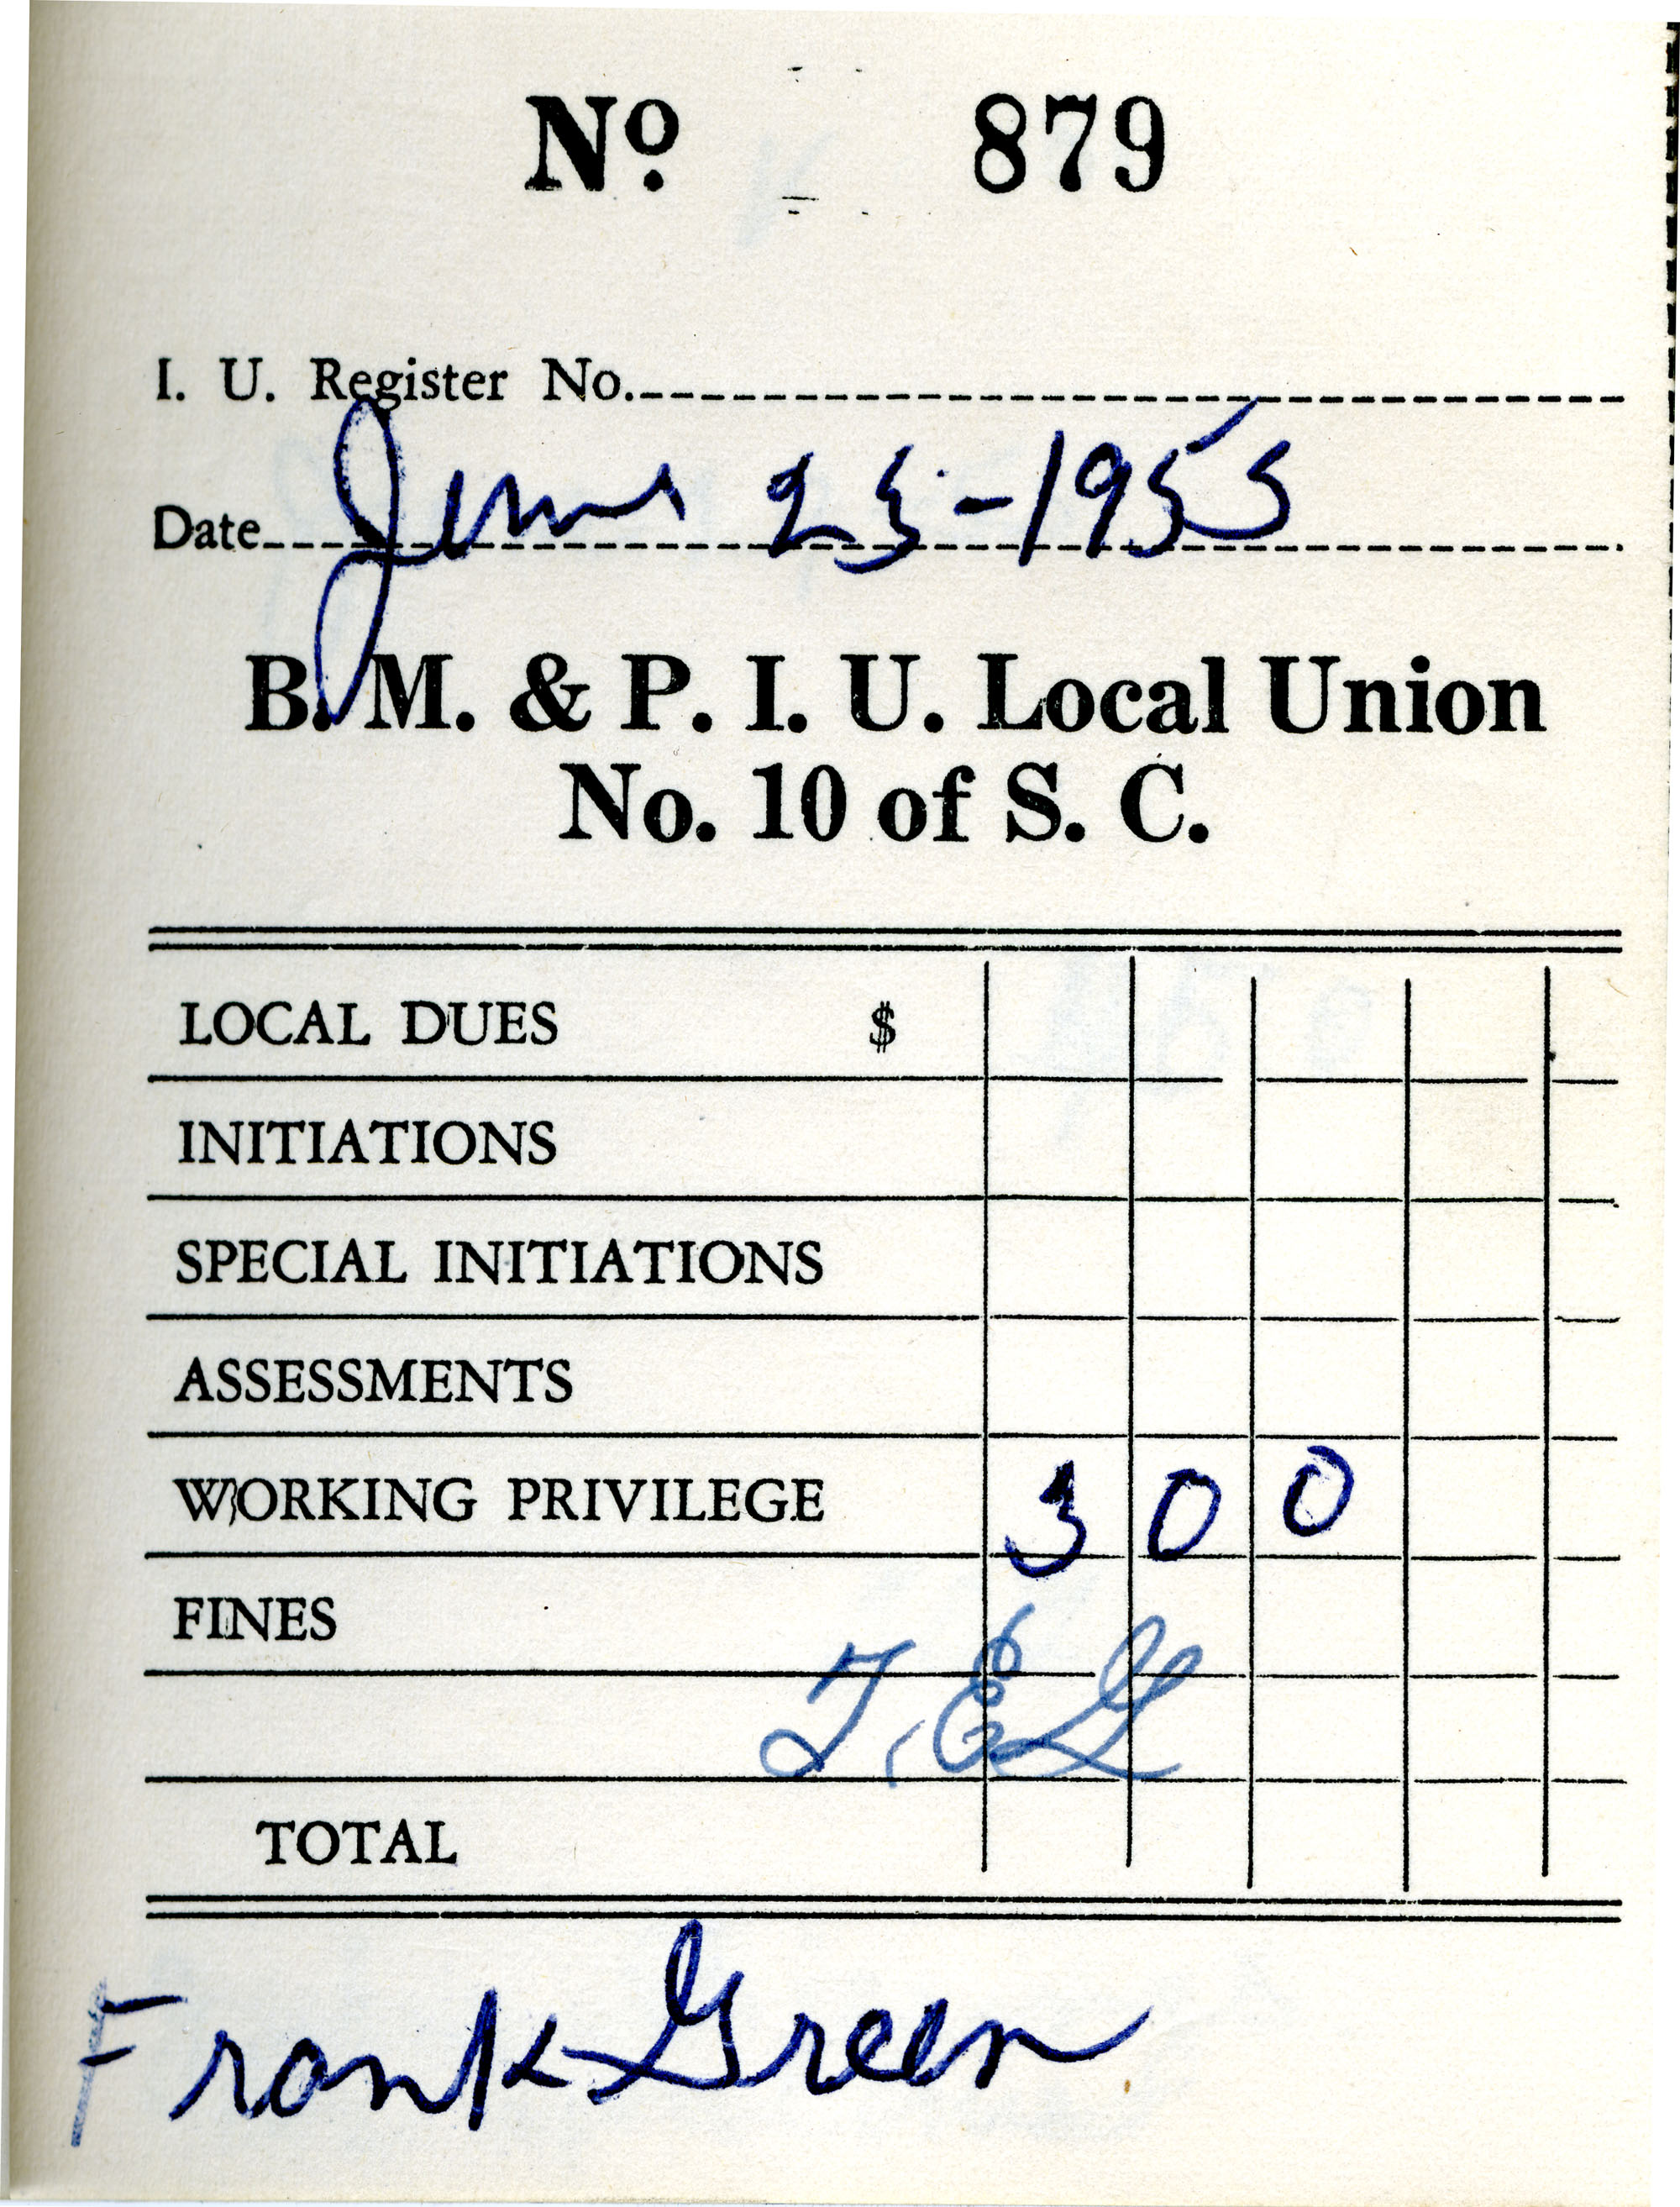 Receipt Book 3, Page 24